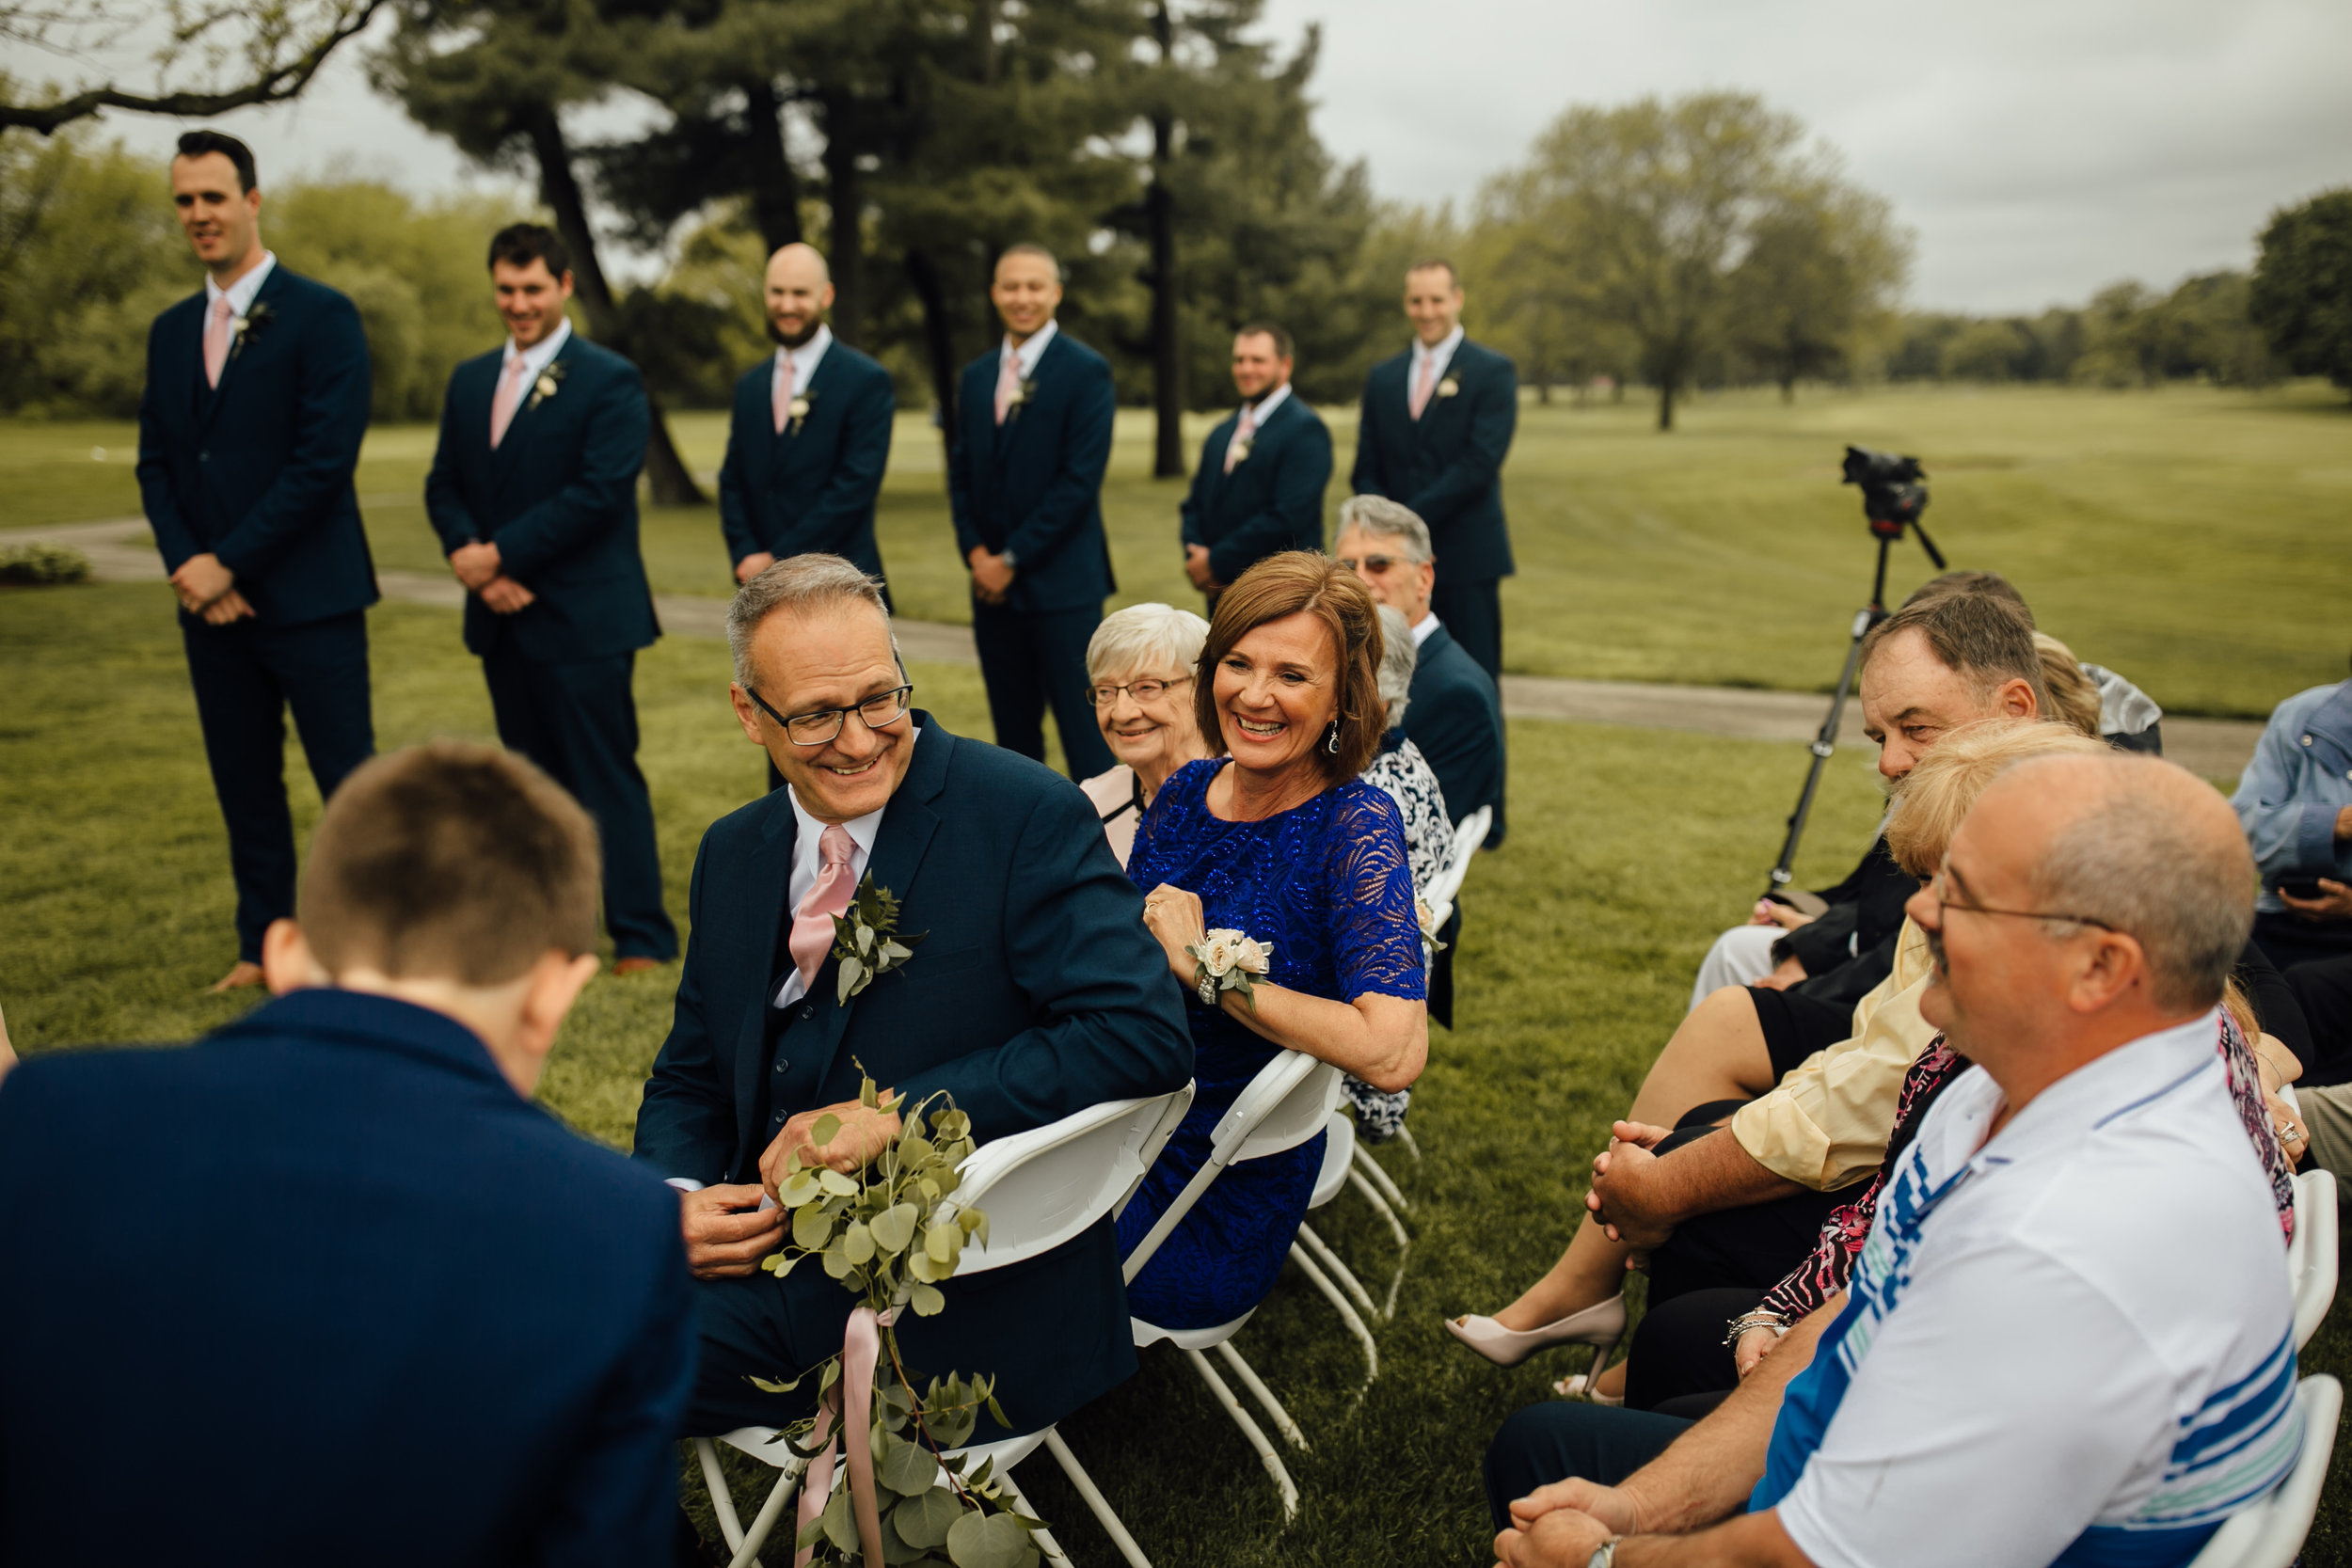 2018-5-Sammi-Travis-Ceremony-Grand-Rapids-Michigan-Wedding-Photographer-104.jpg